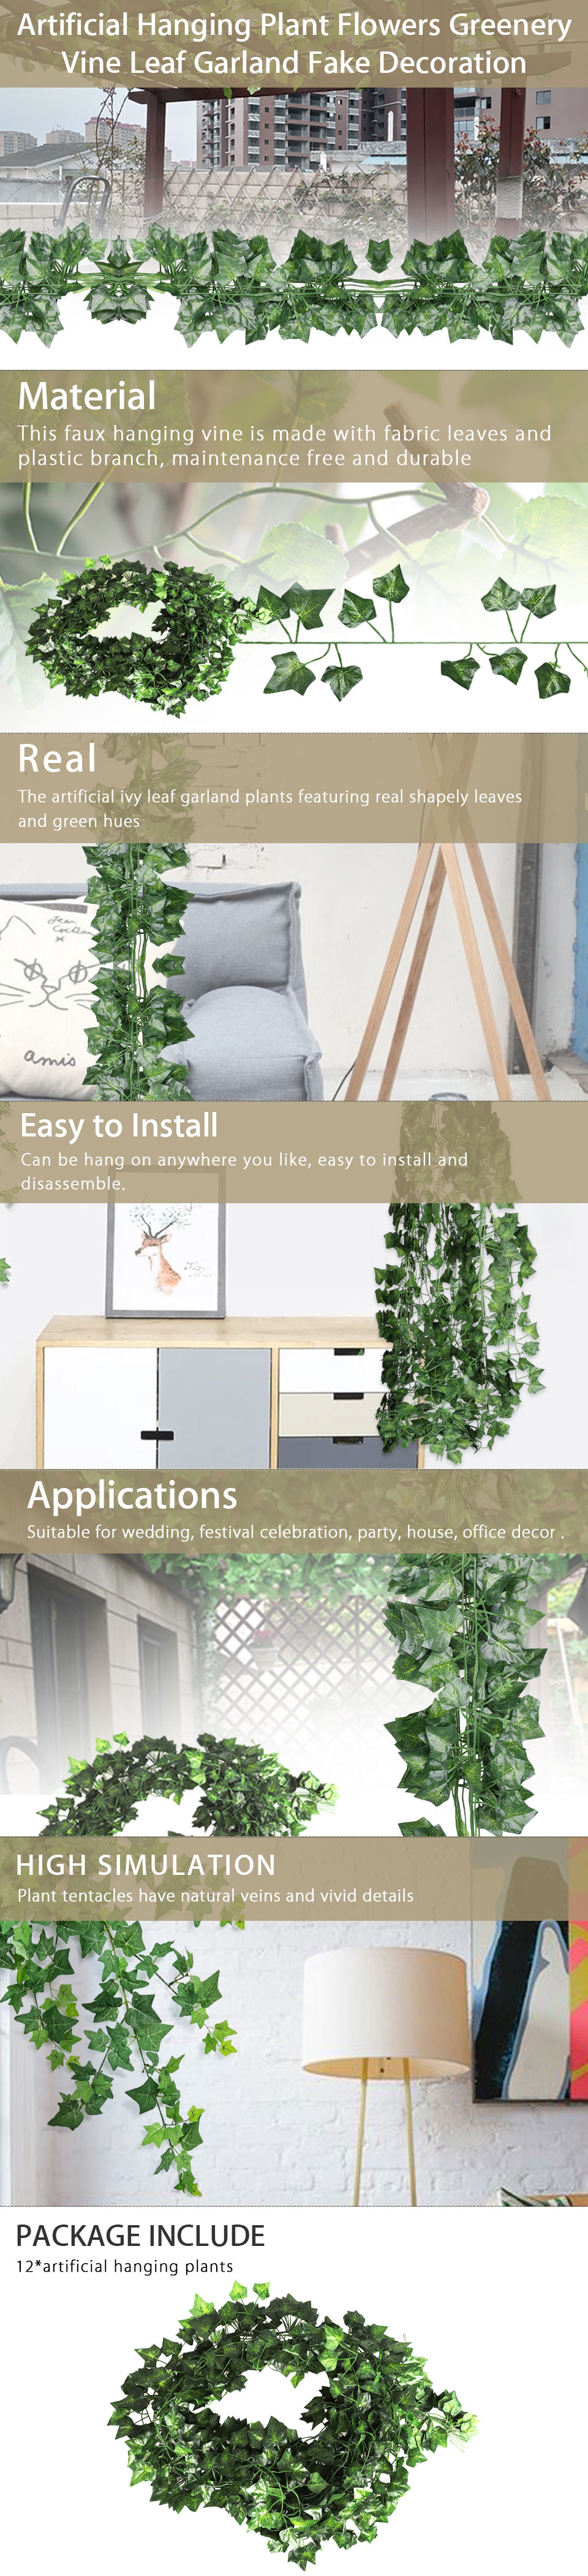 ivy and vine interior design style